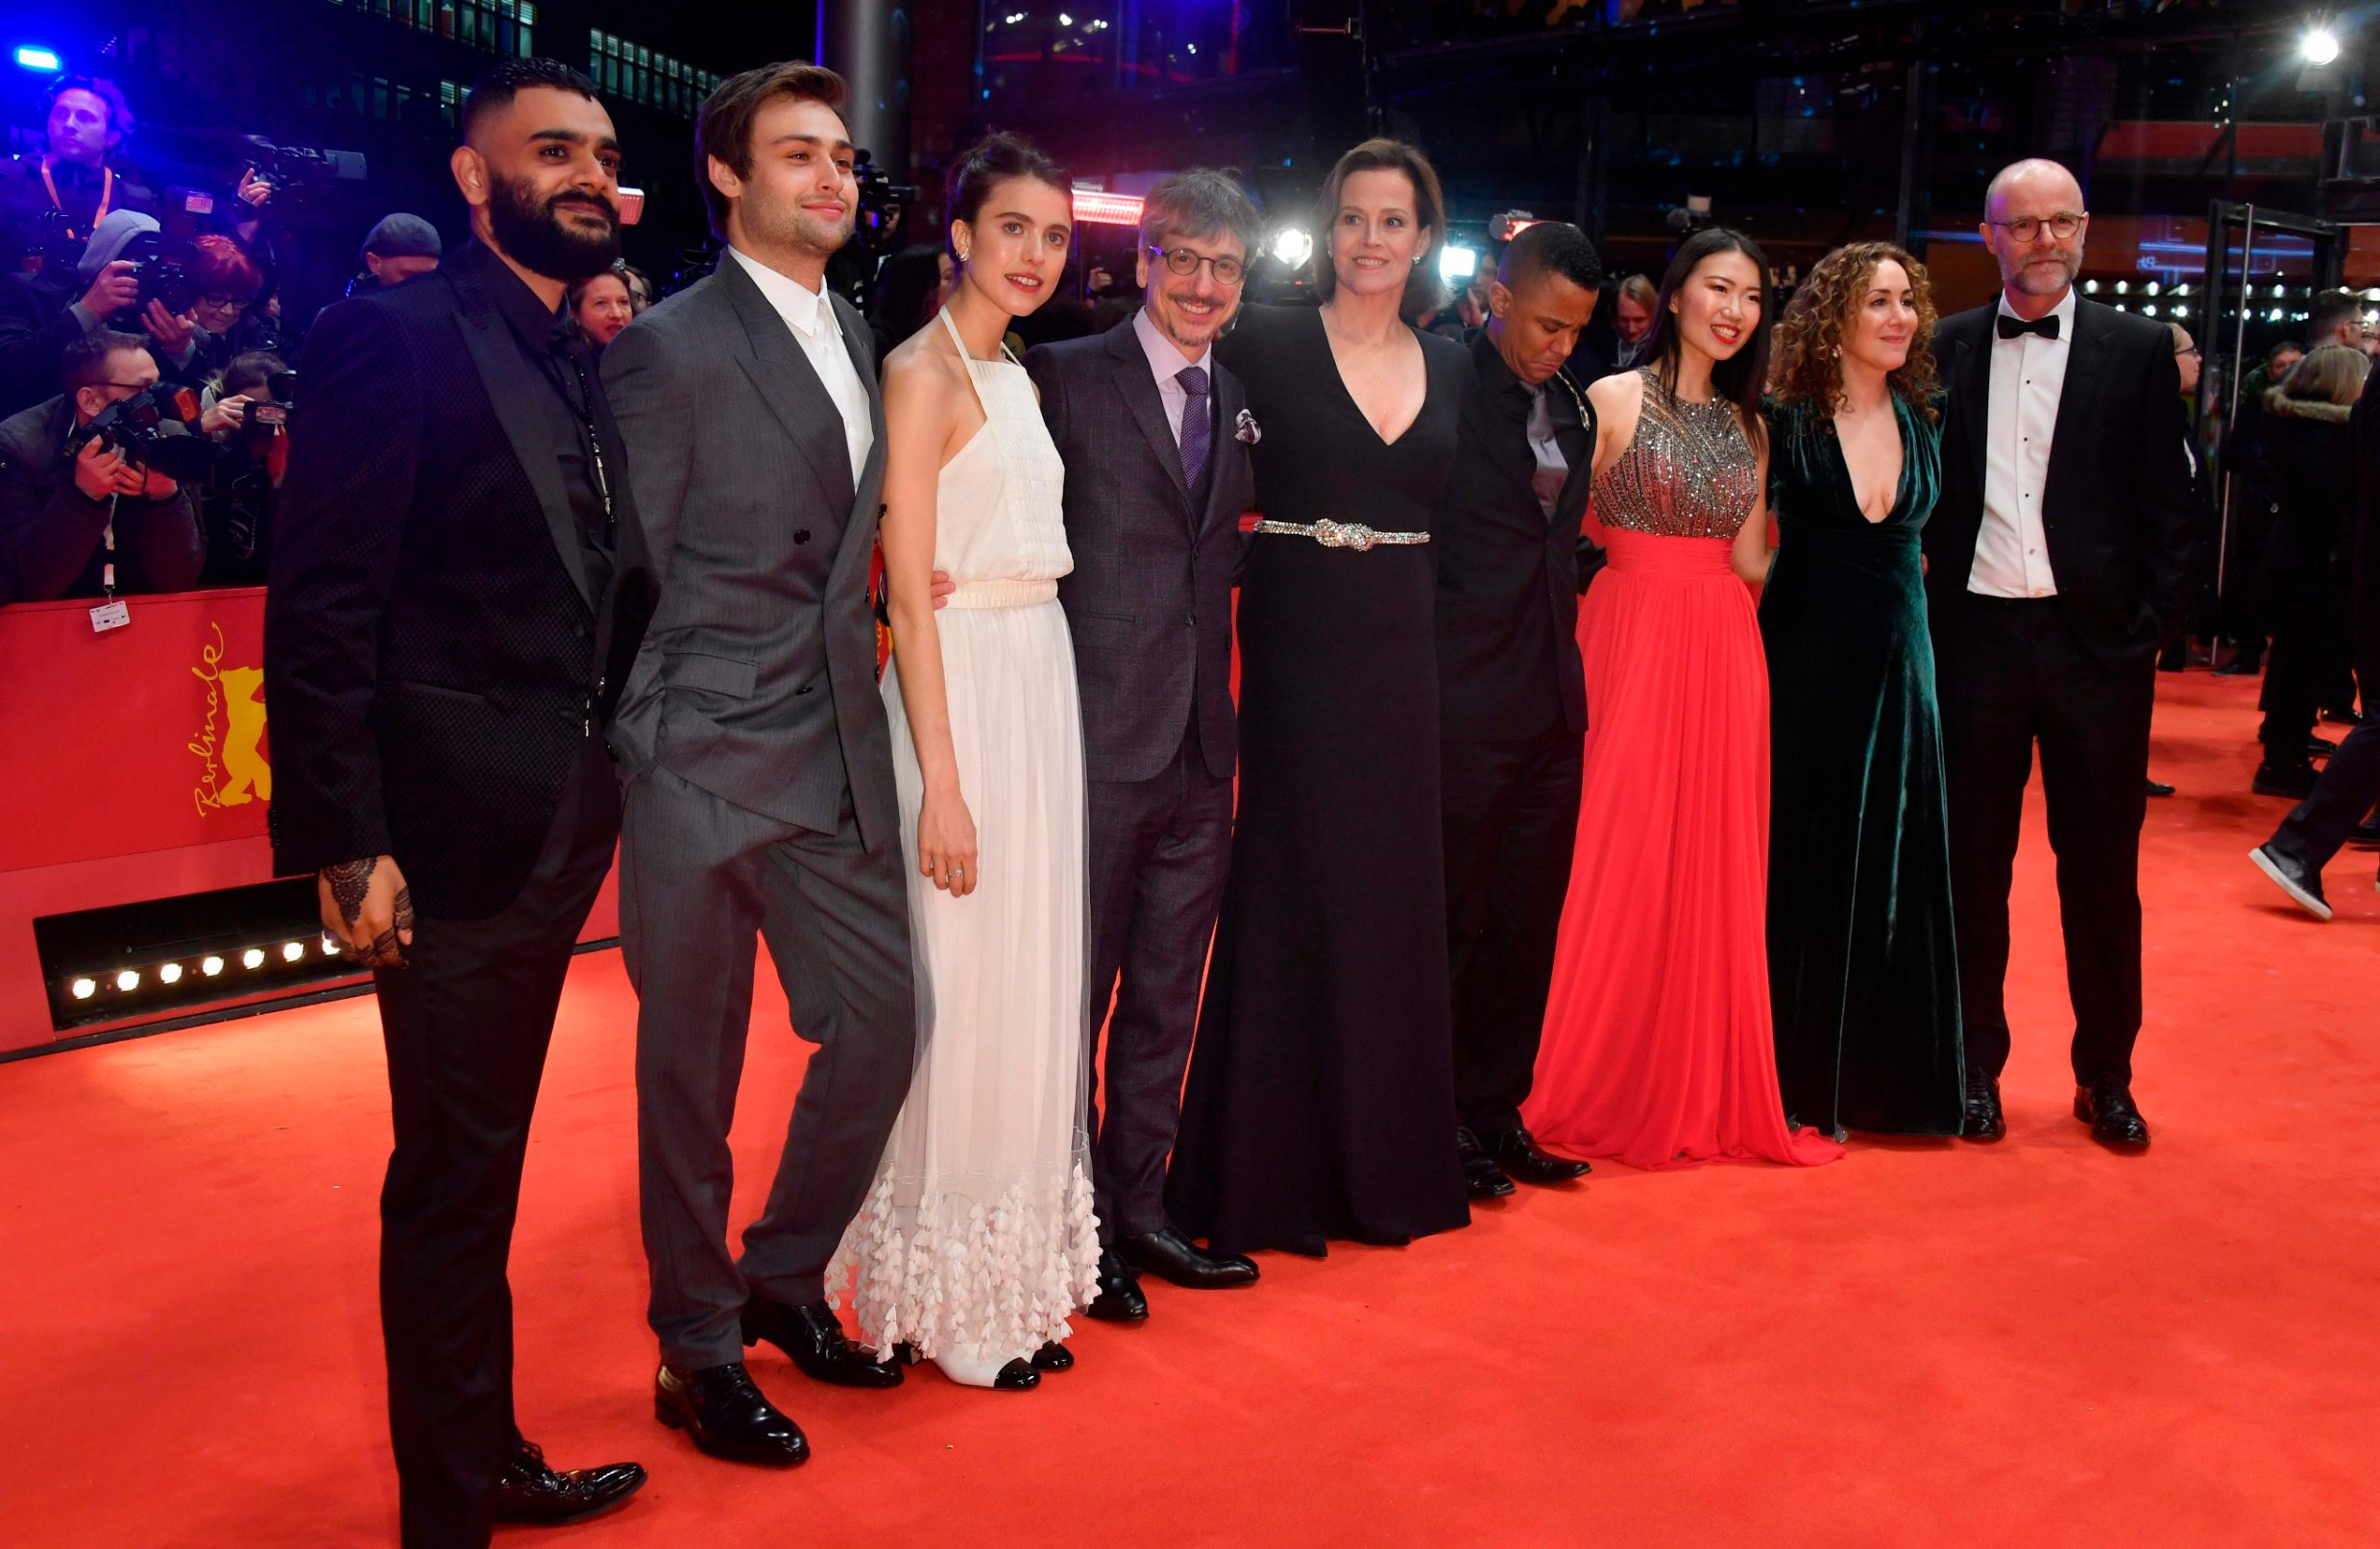 The cast of the film